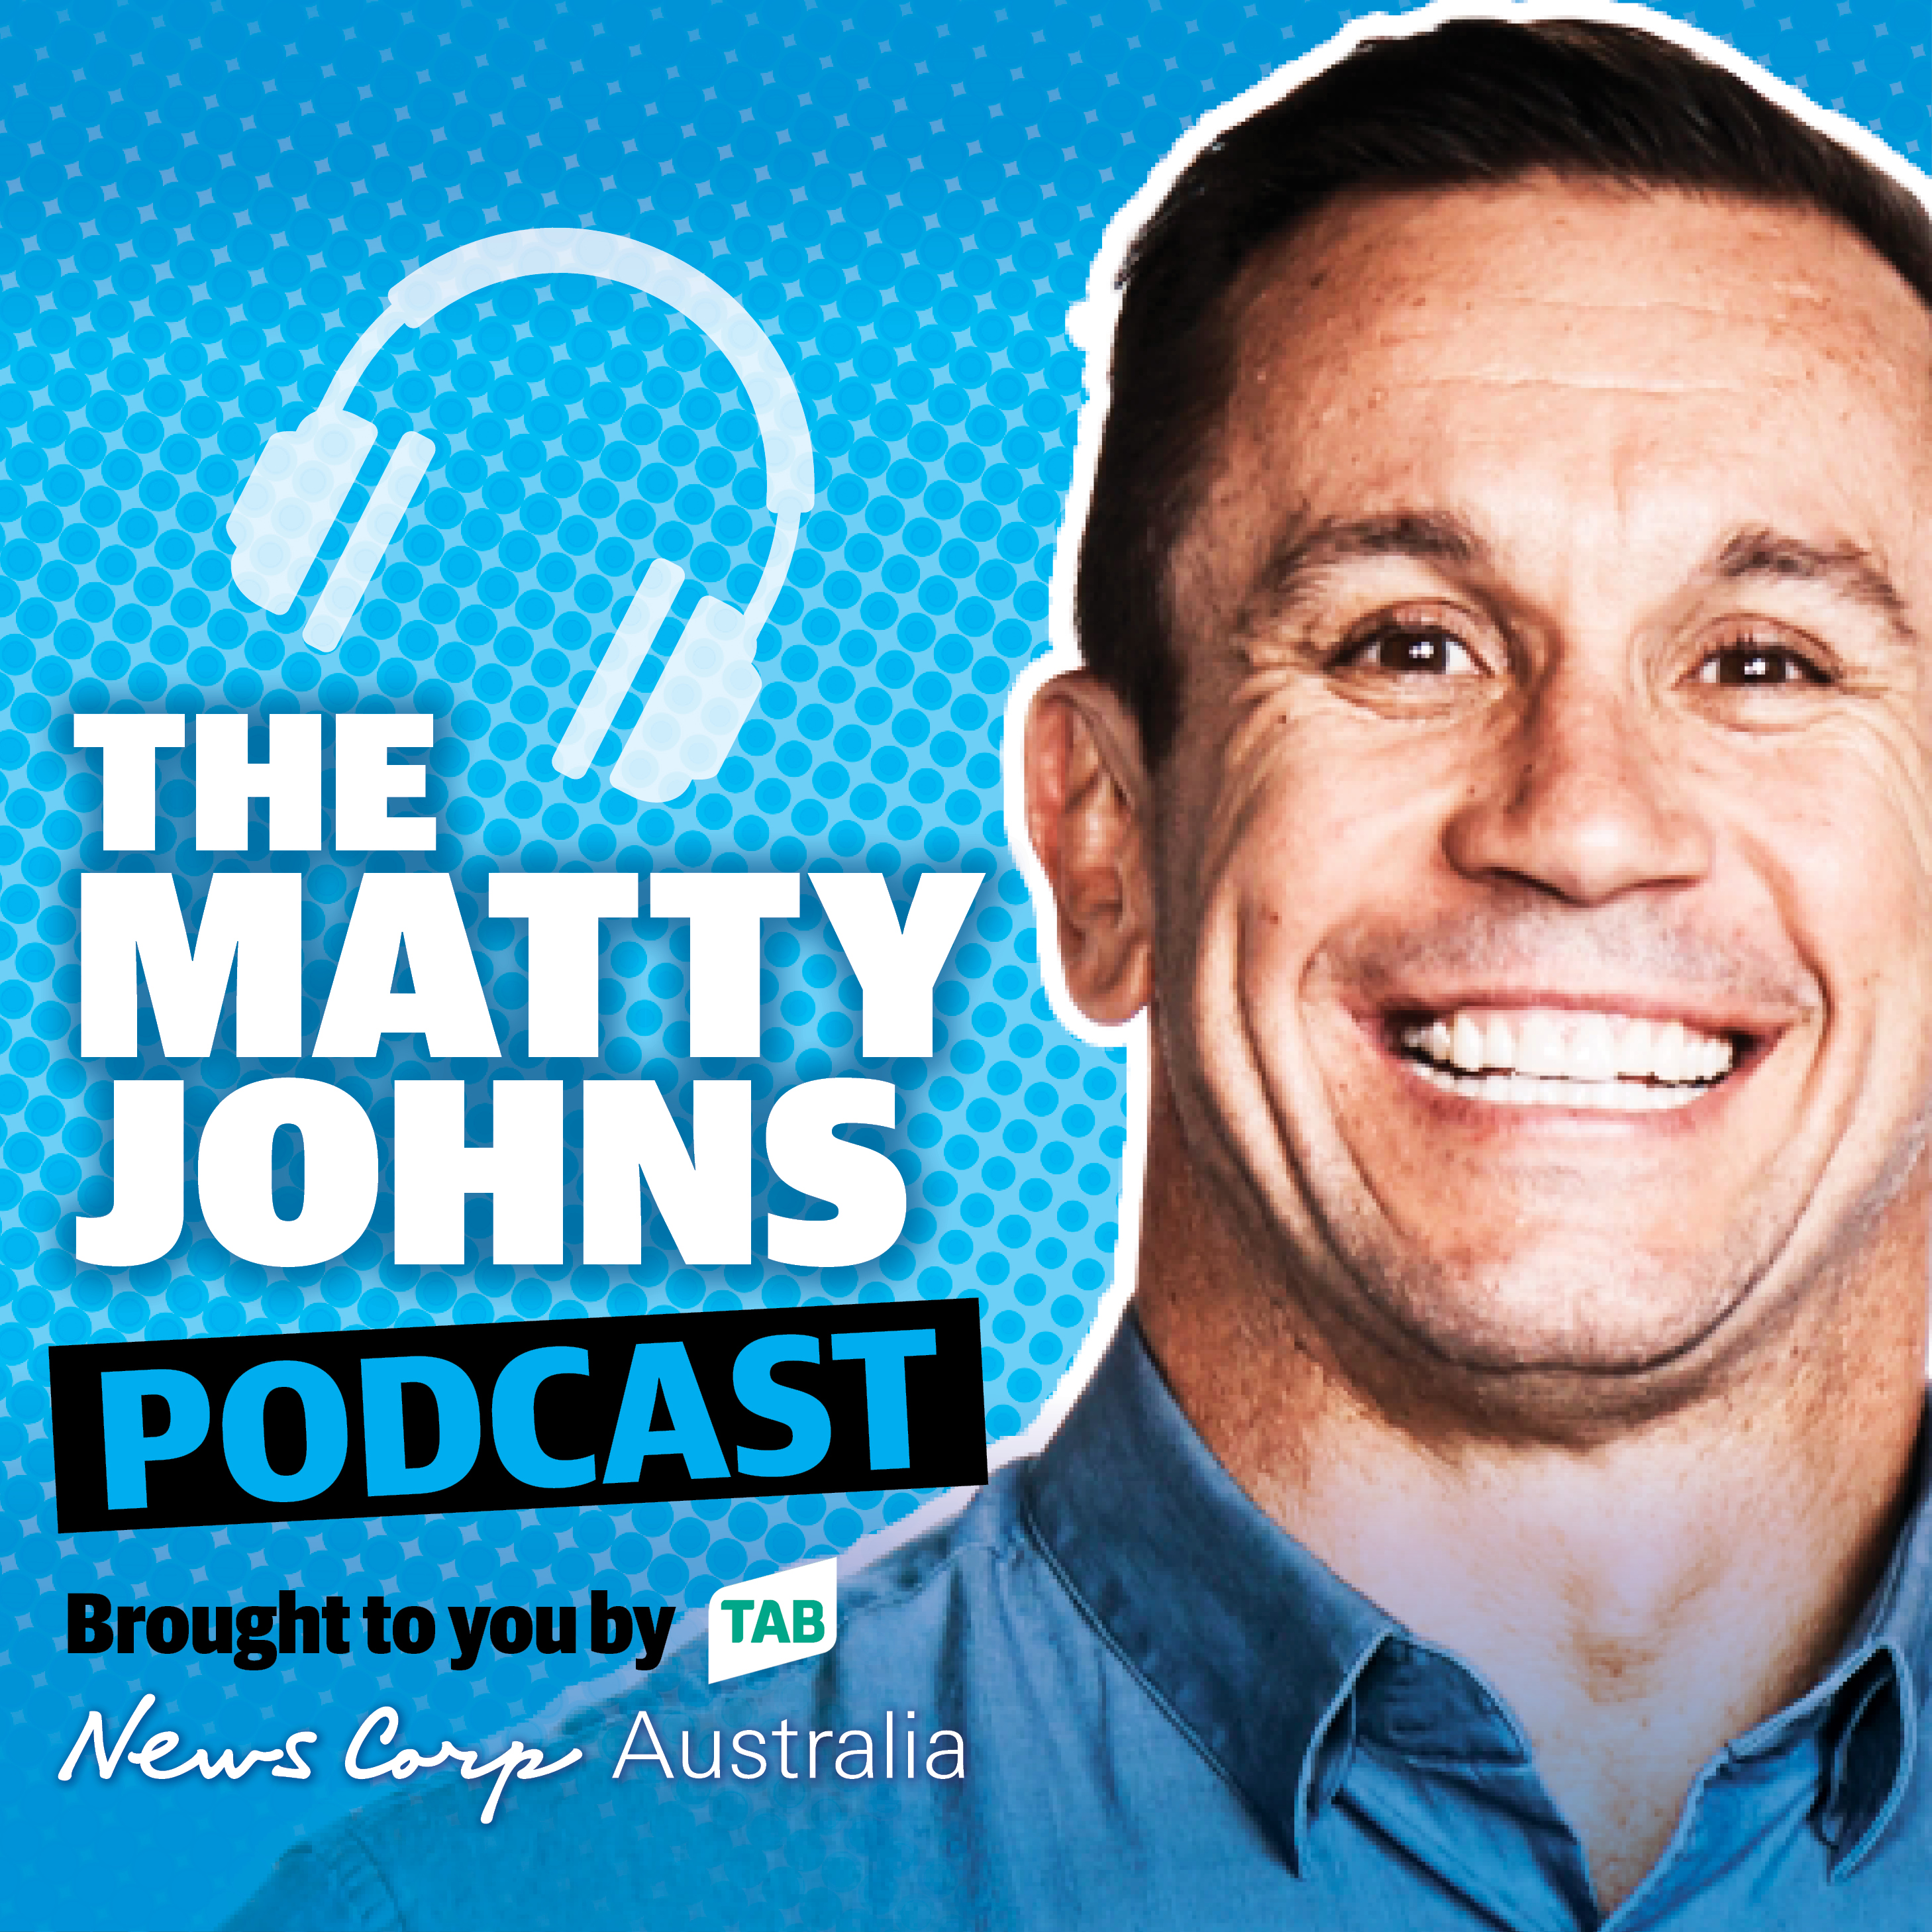 312d127210ab The Matty Johns Podcast - Whooshkaa